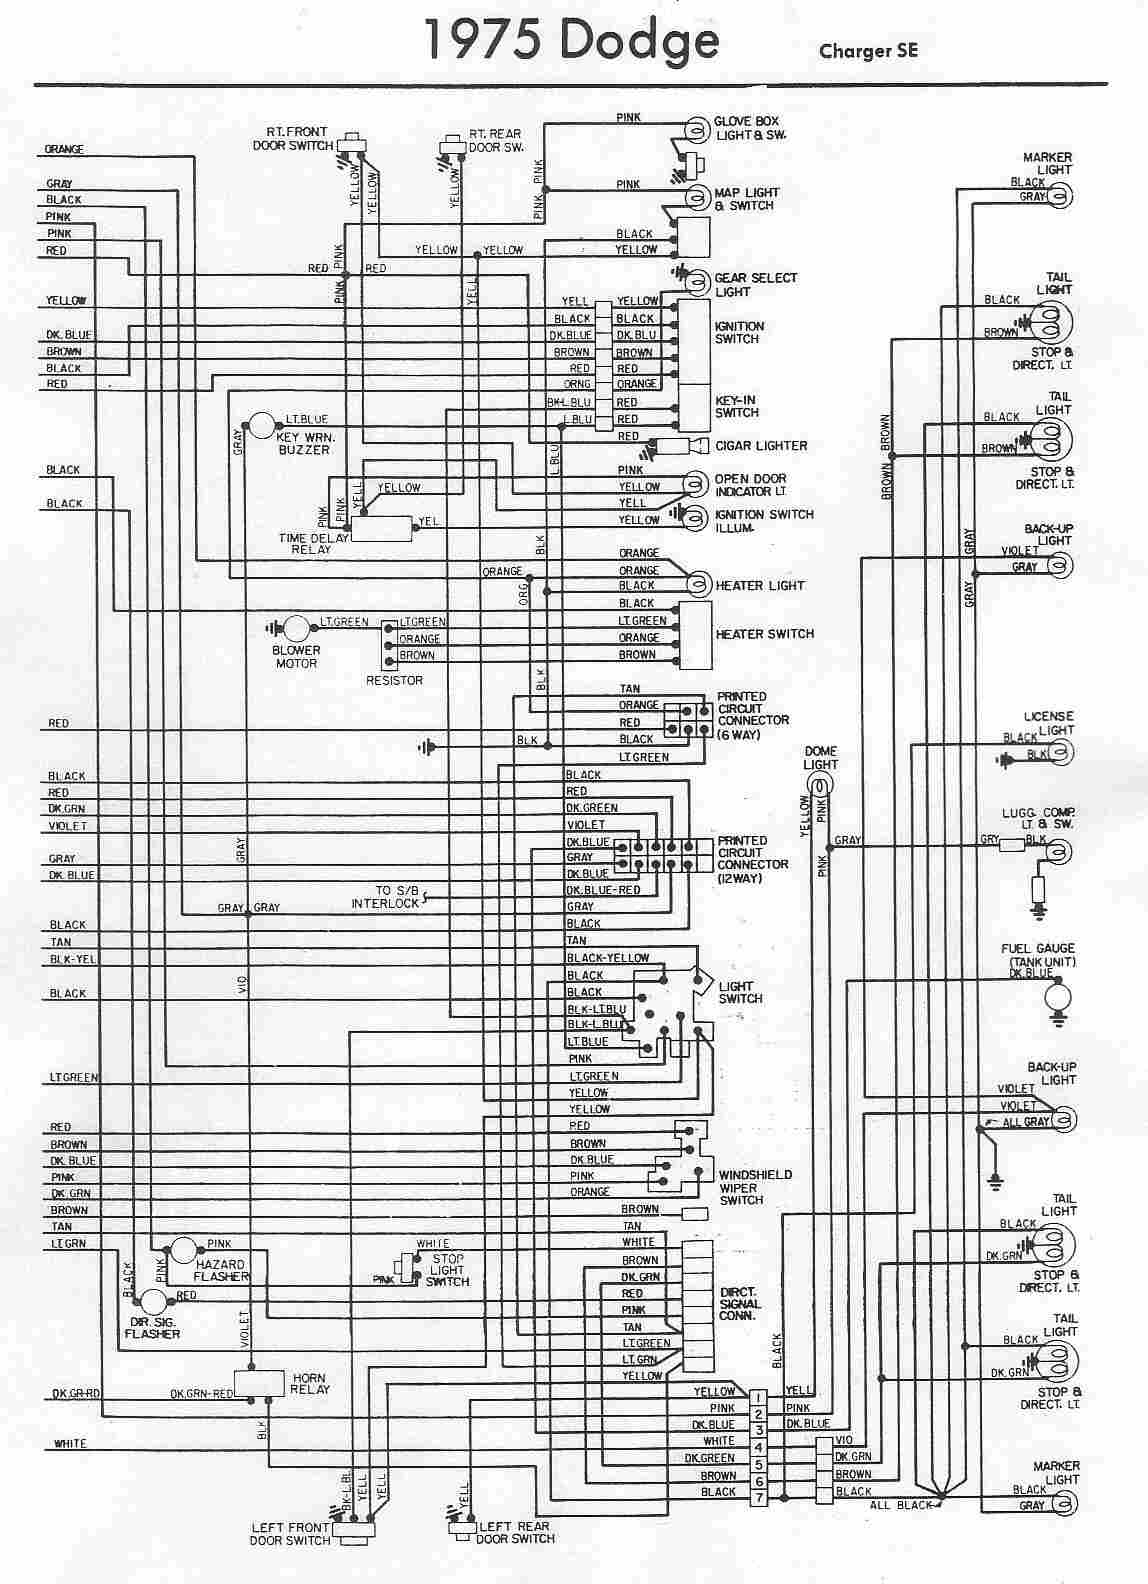 dodge car manuals, wiring diagrams pdf & fault codes 1975 dodge truck wiring 1971 dodge charger radio wiring diagram #39